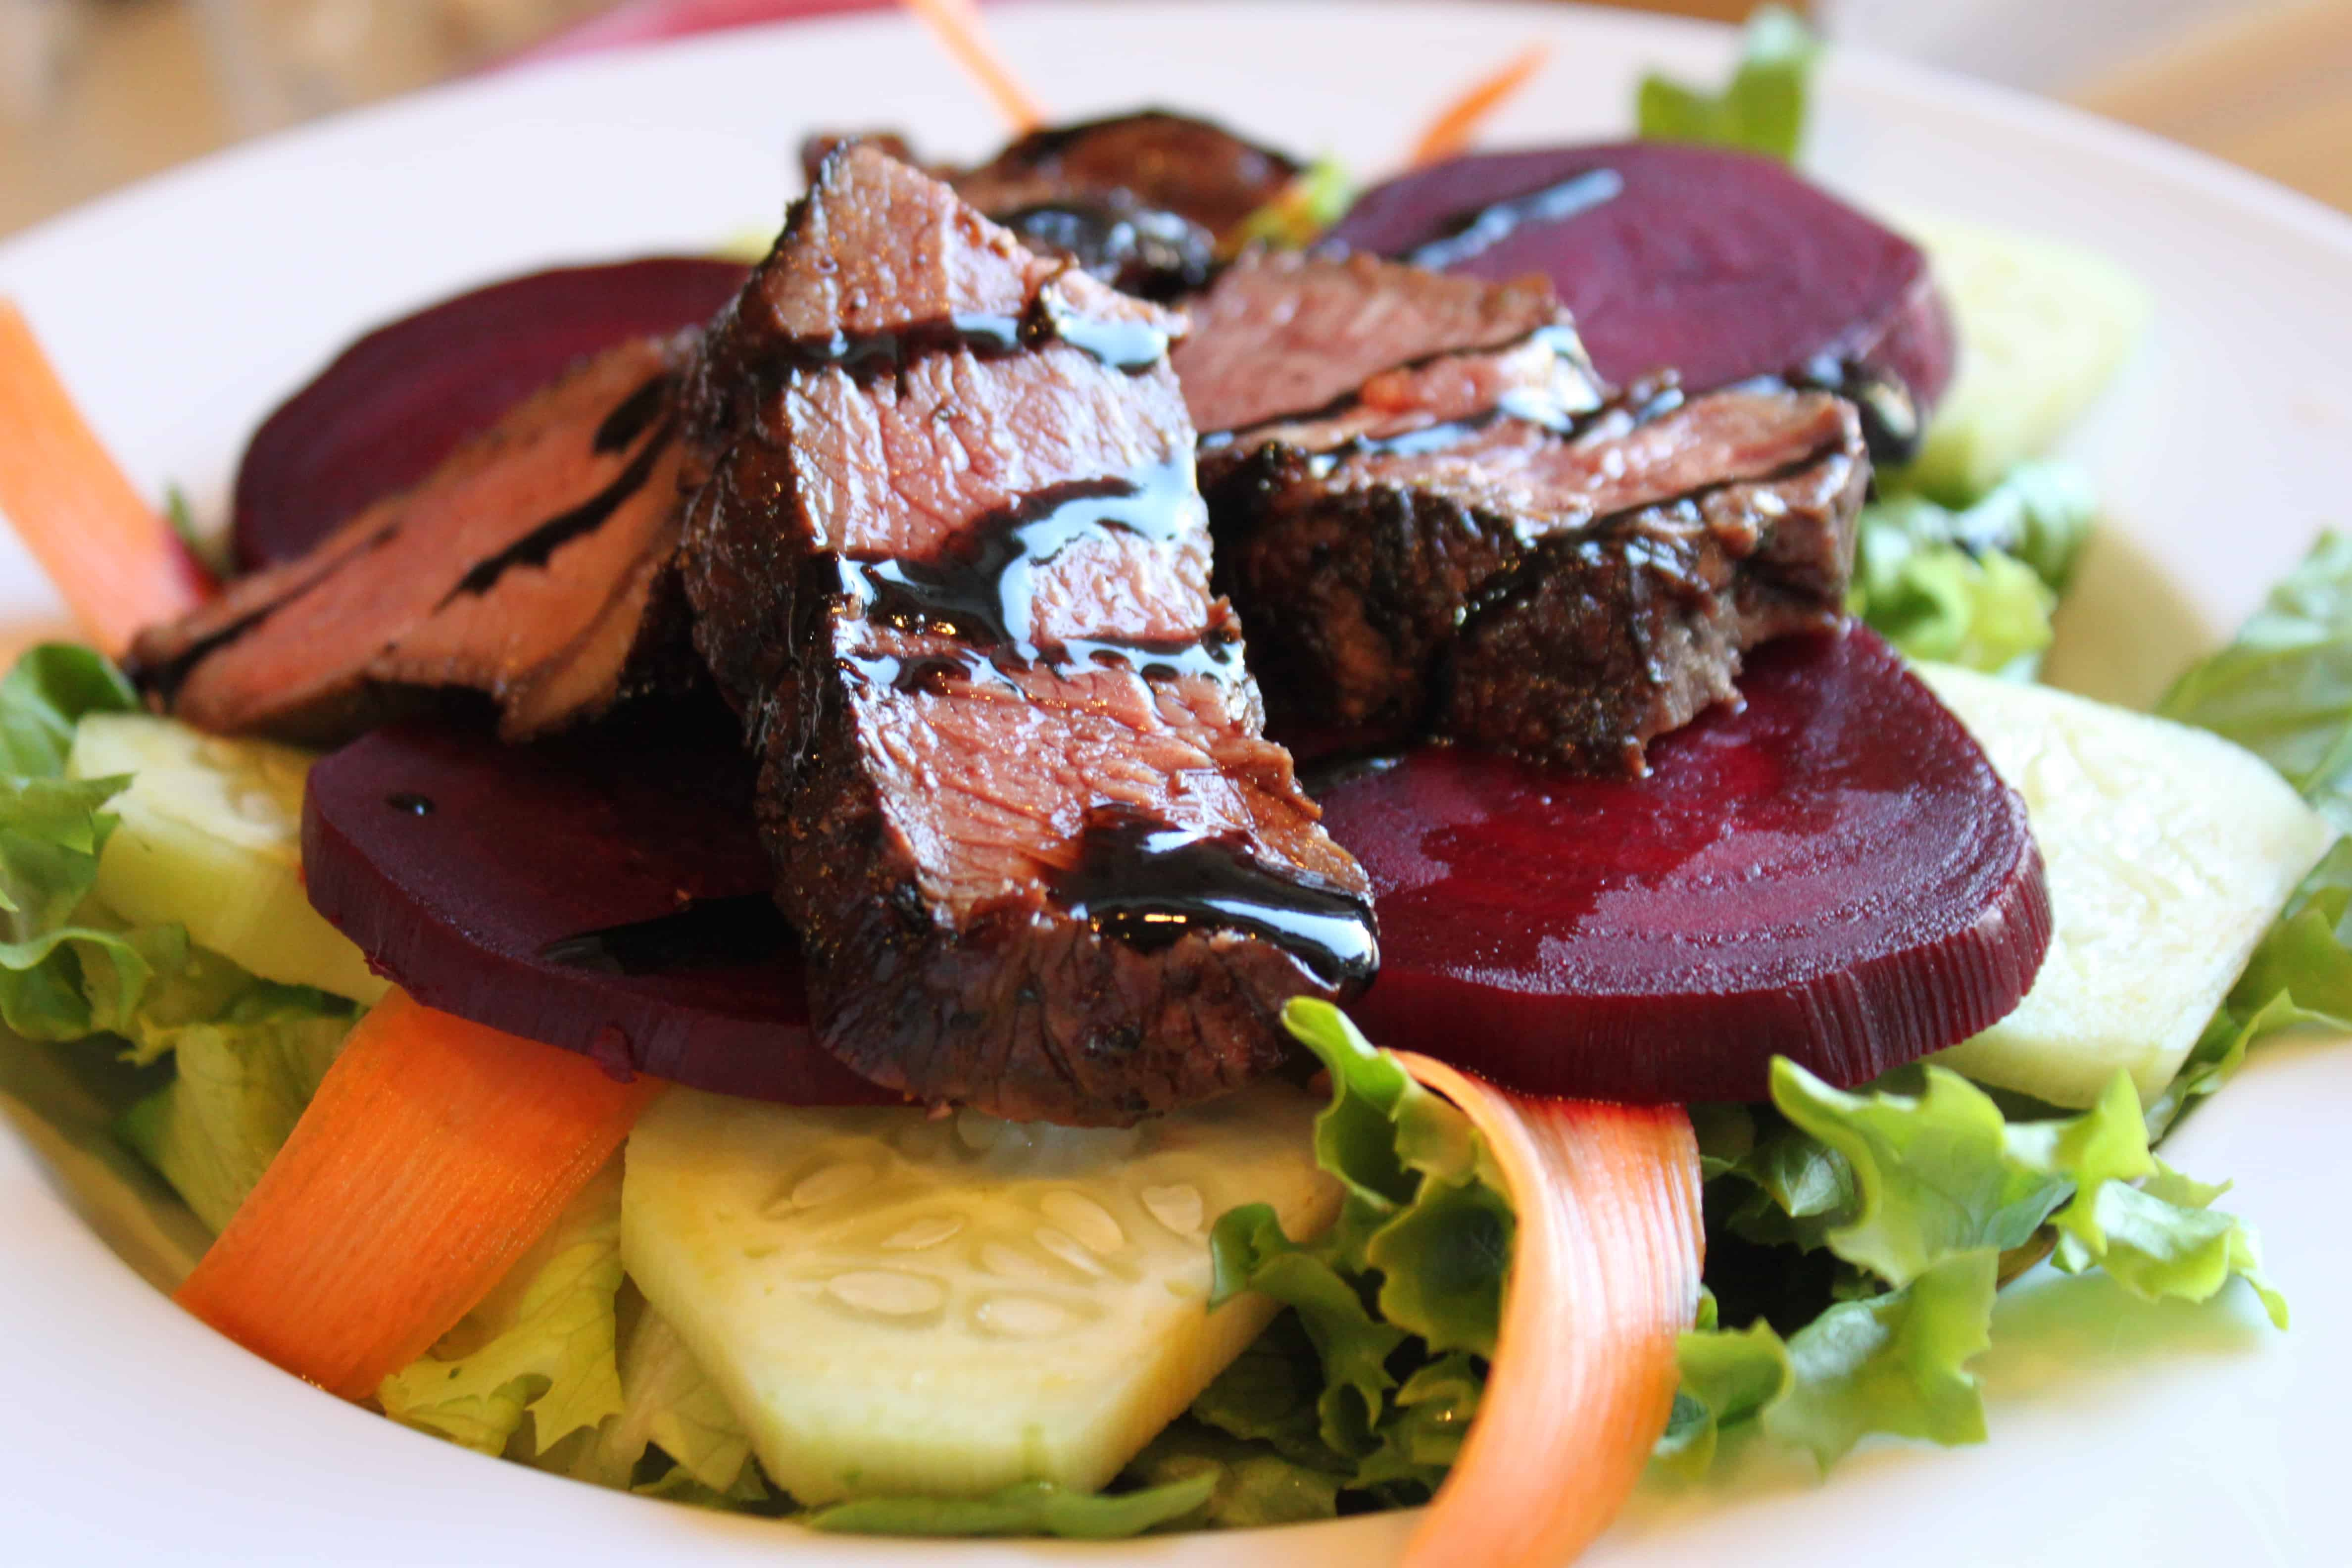 Grilled Steak Salad with Beets